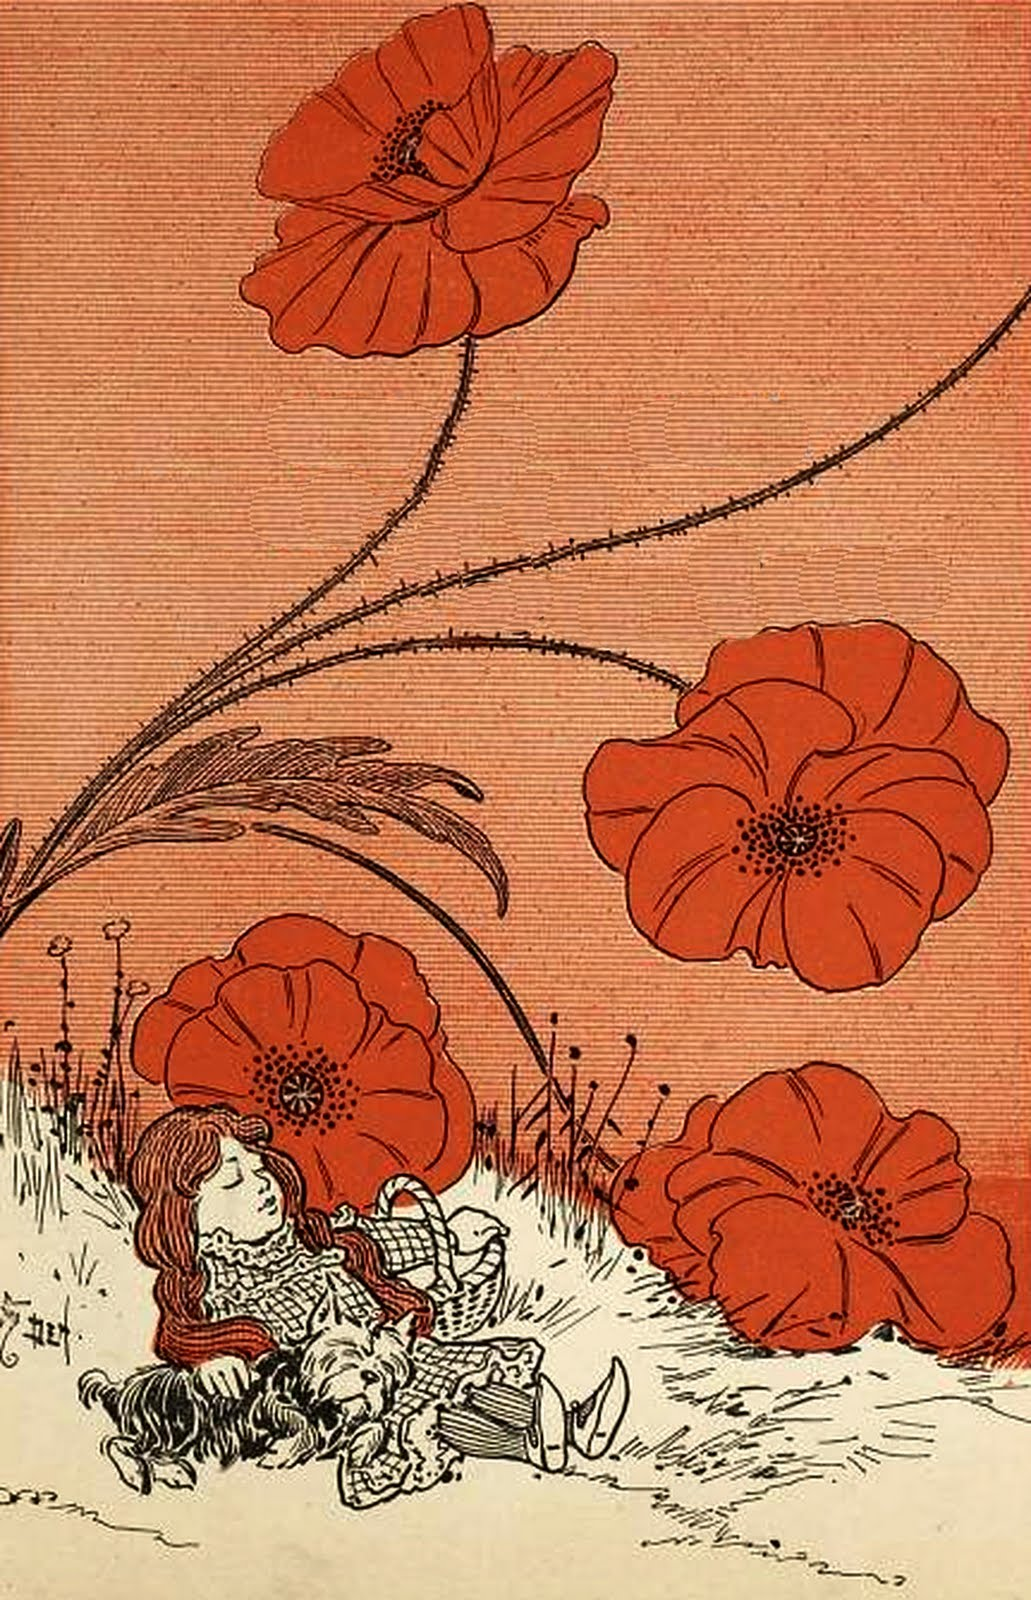 Deadly Poppies -The Wonderful Wizard of Oz -Illustrated by William Wallace